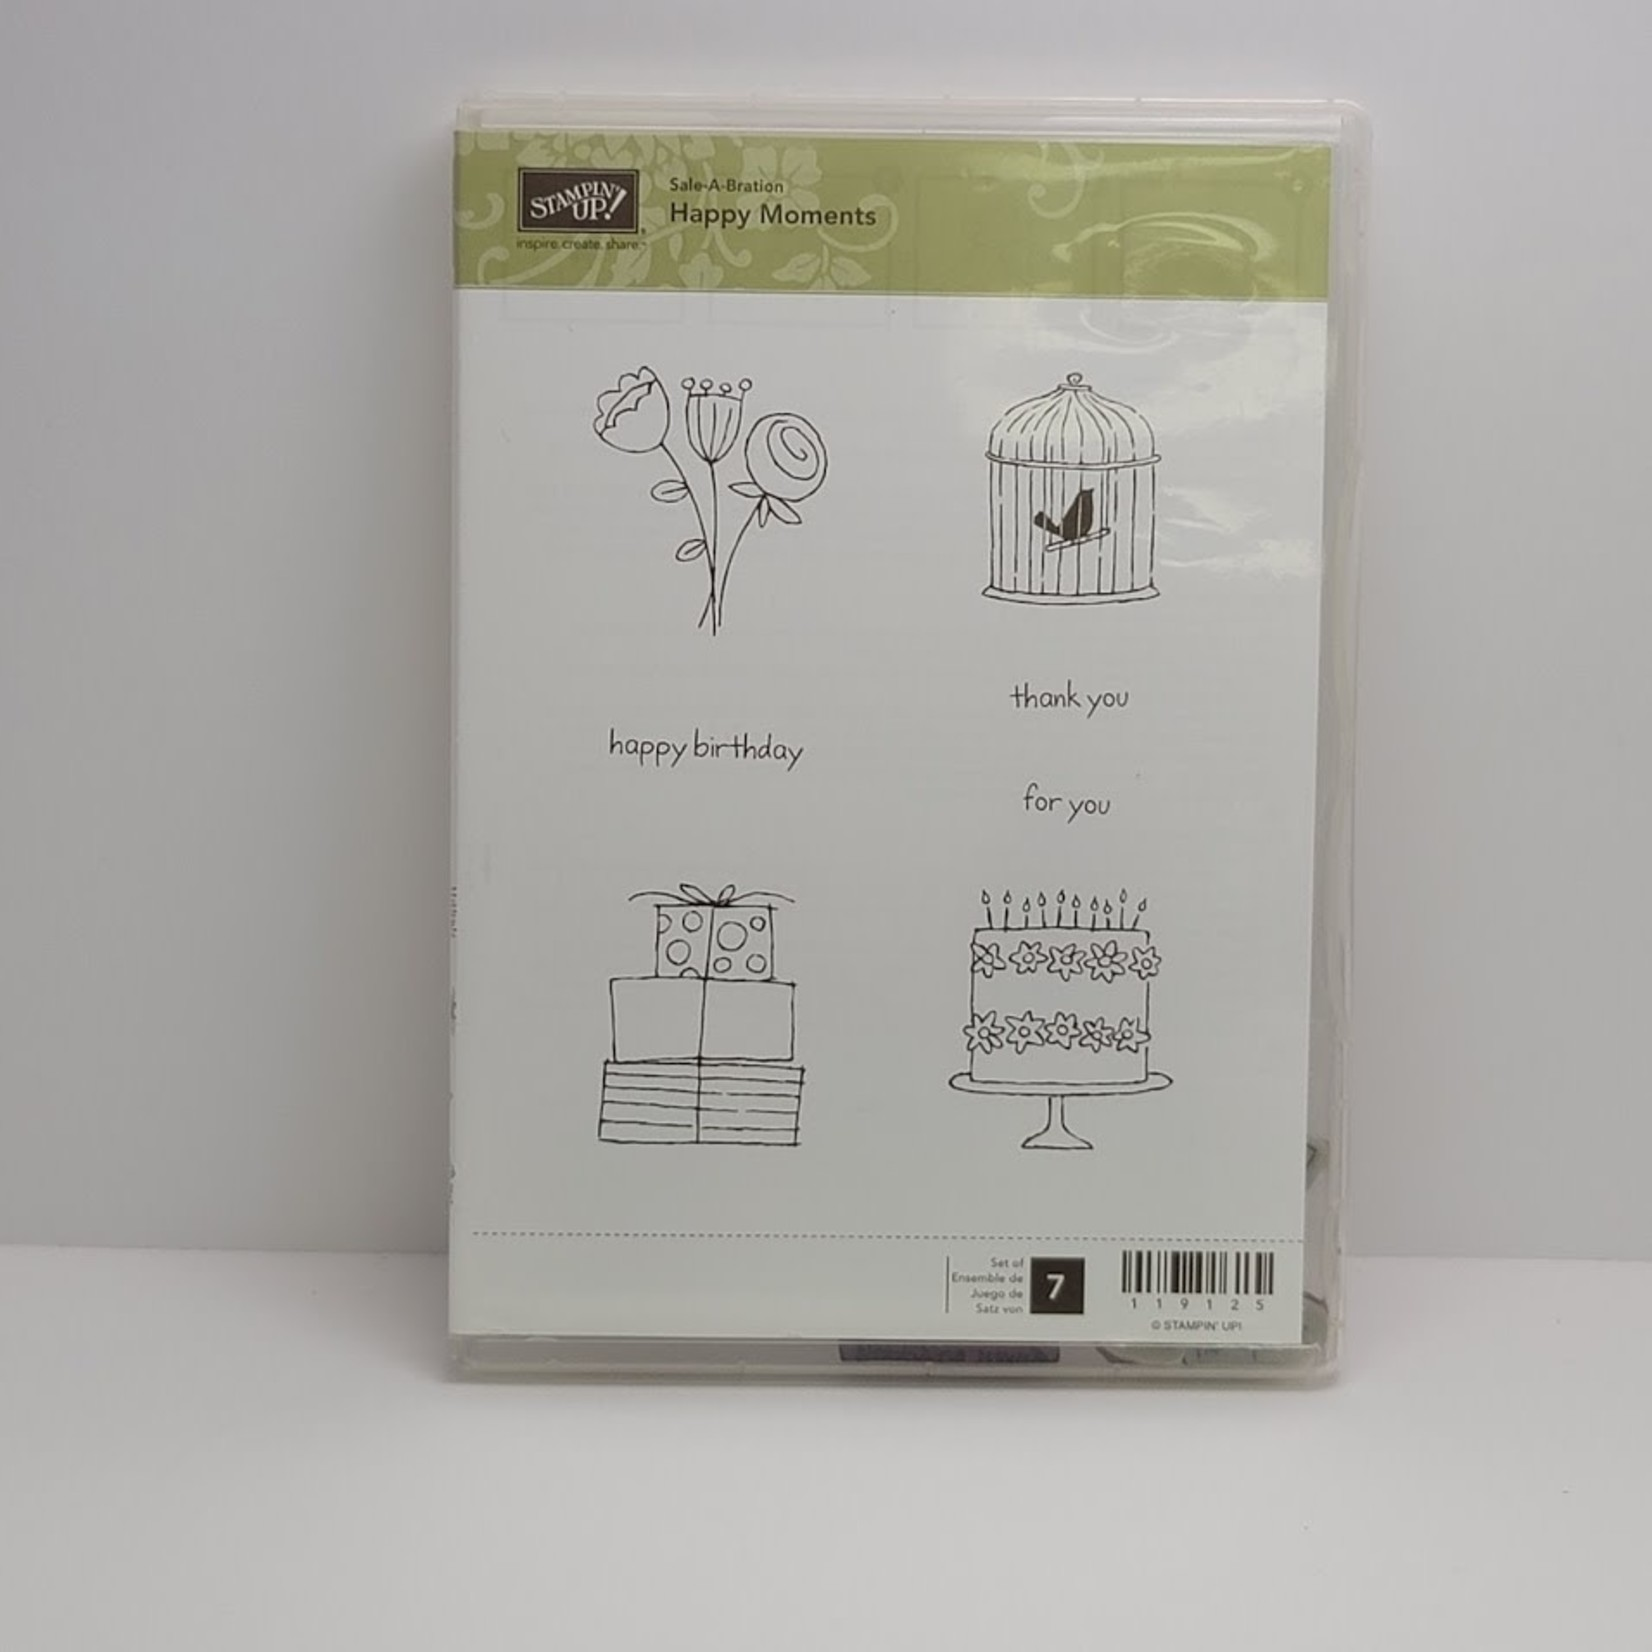 Stampin' Up Stampin' up - Cling Stamps - Happy Moments